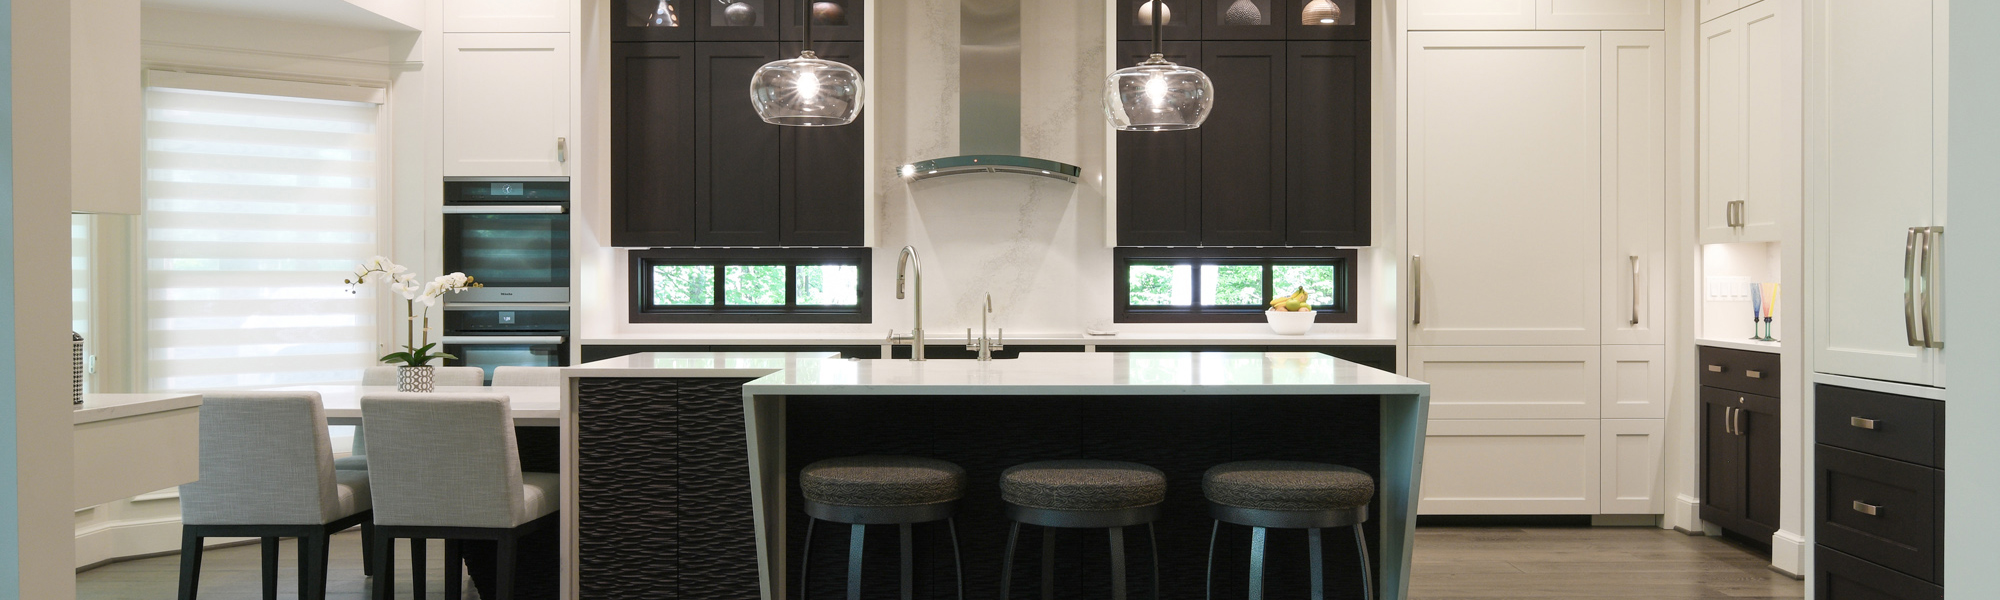 BOWA Design Build Kitchen Renovation in McLean